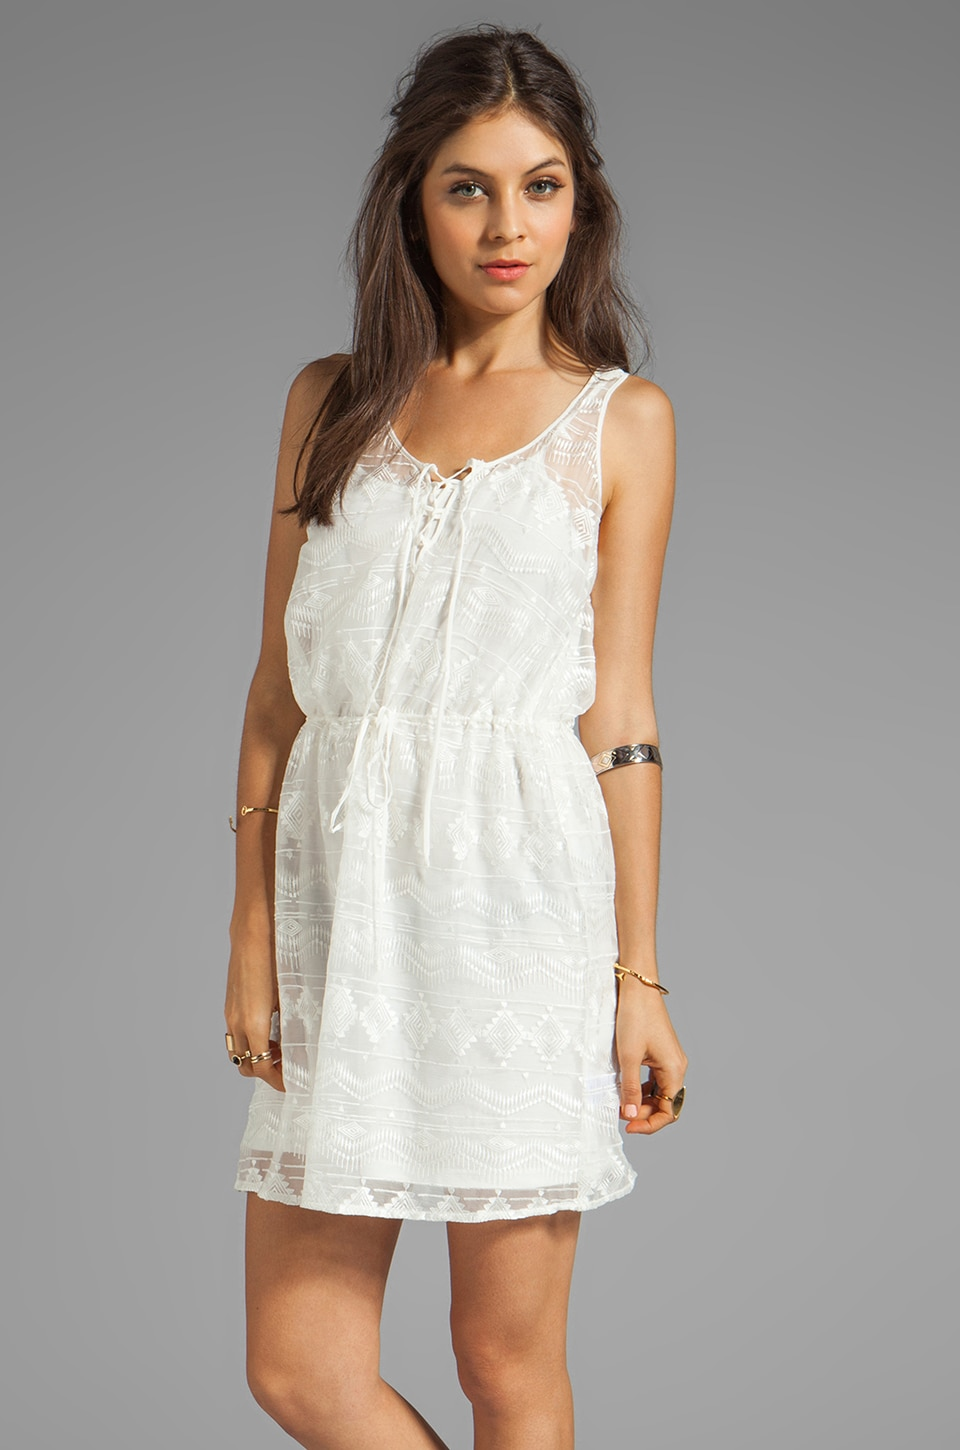 Greylin Mila Embroidered Tank Dress in Ivory